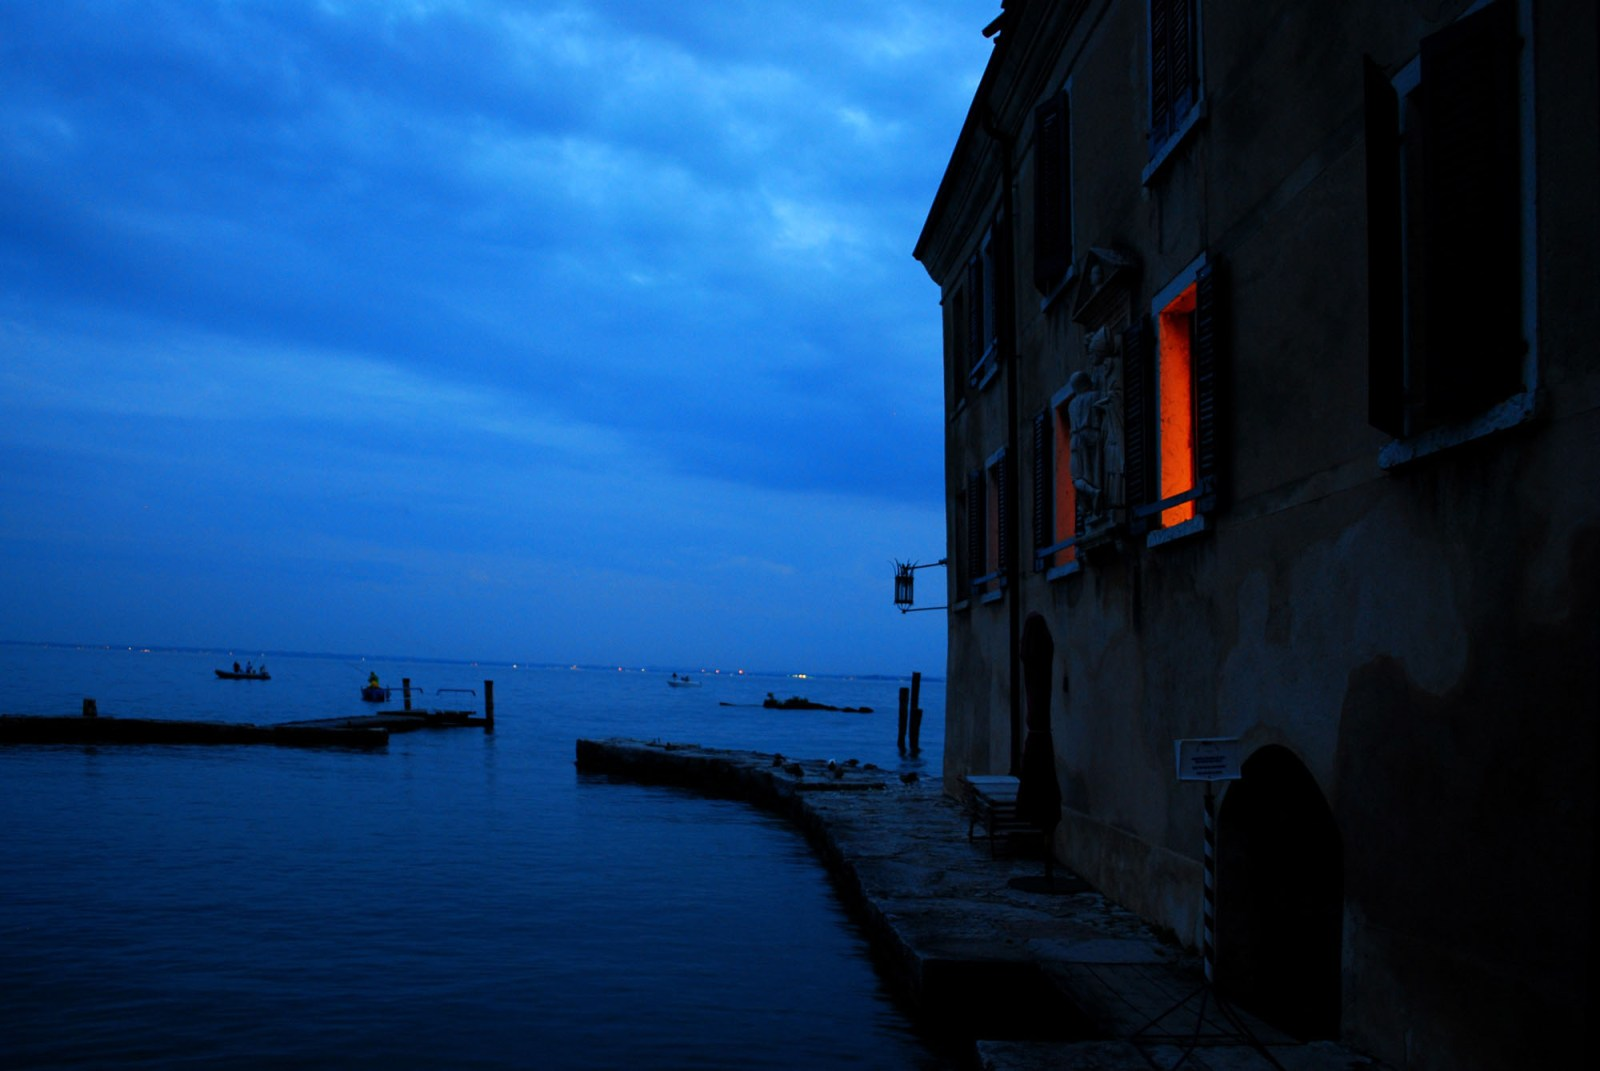 006_LOWRES__Lightscape-San Vigilio, the lake at night_studio Dossofiorito_credits Dossofiorito